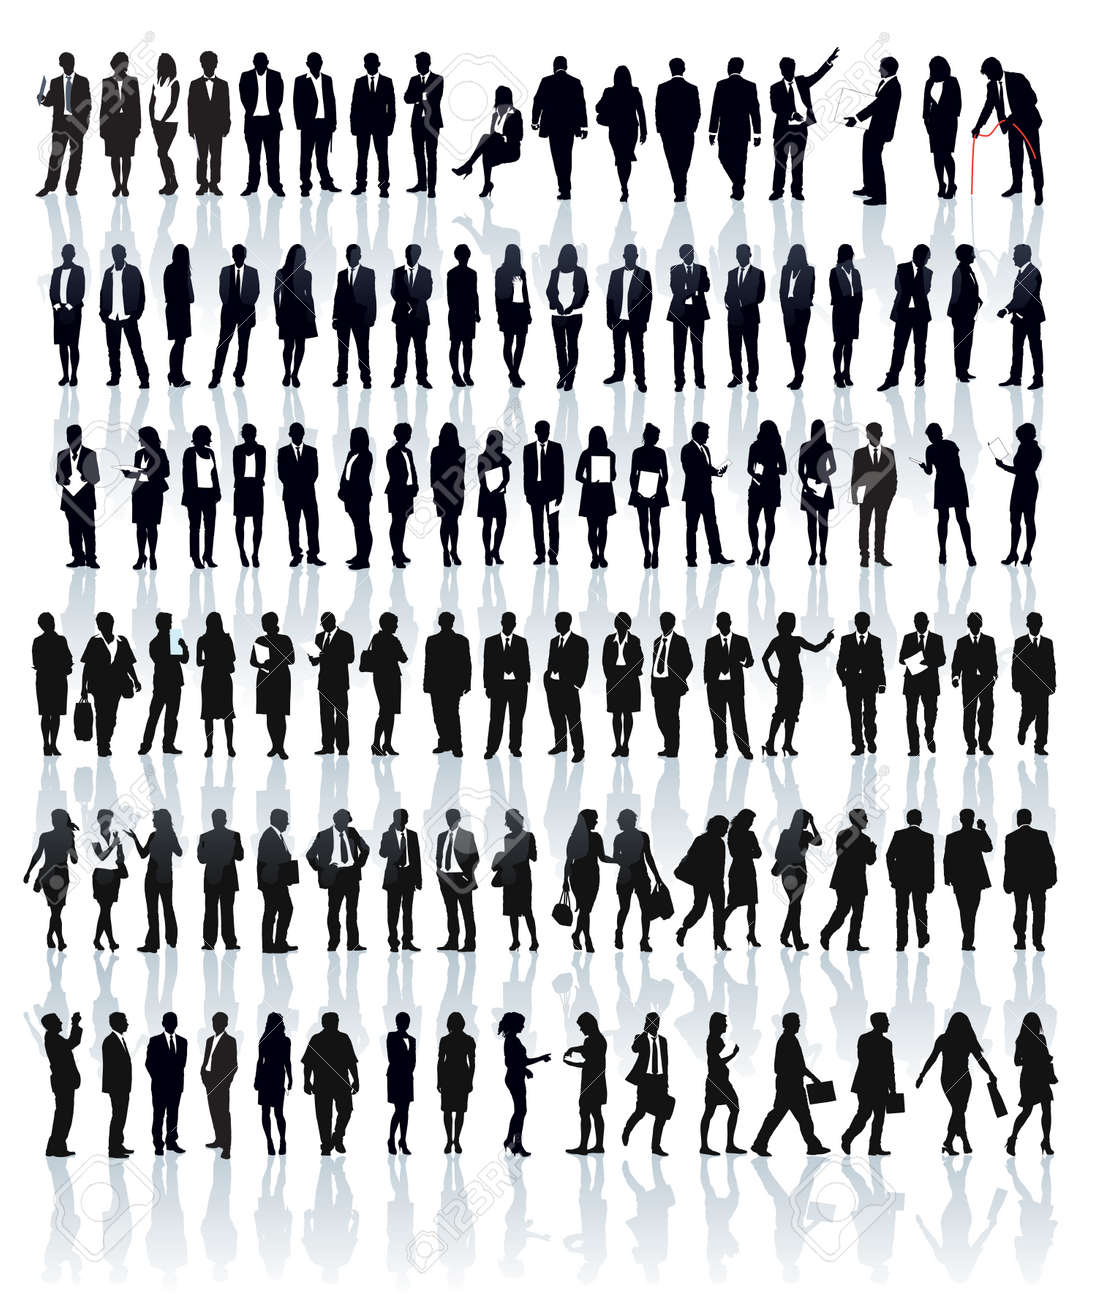 Large set of people silhouettes. Businesspeople; men and women. Standard-Bild - 34605674